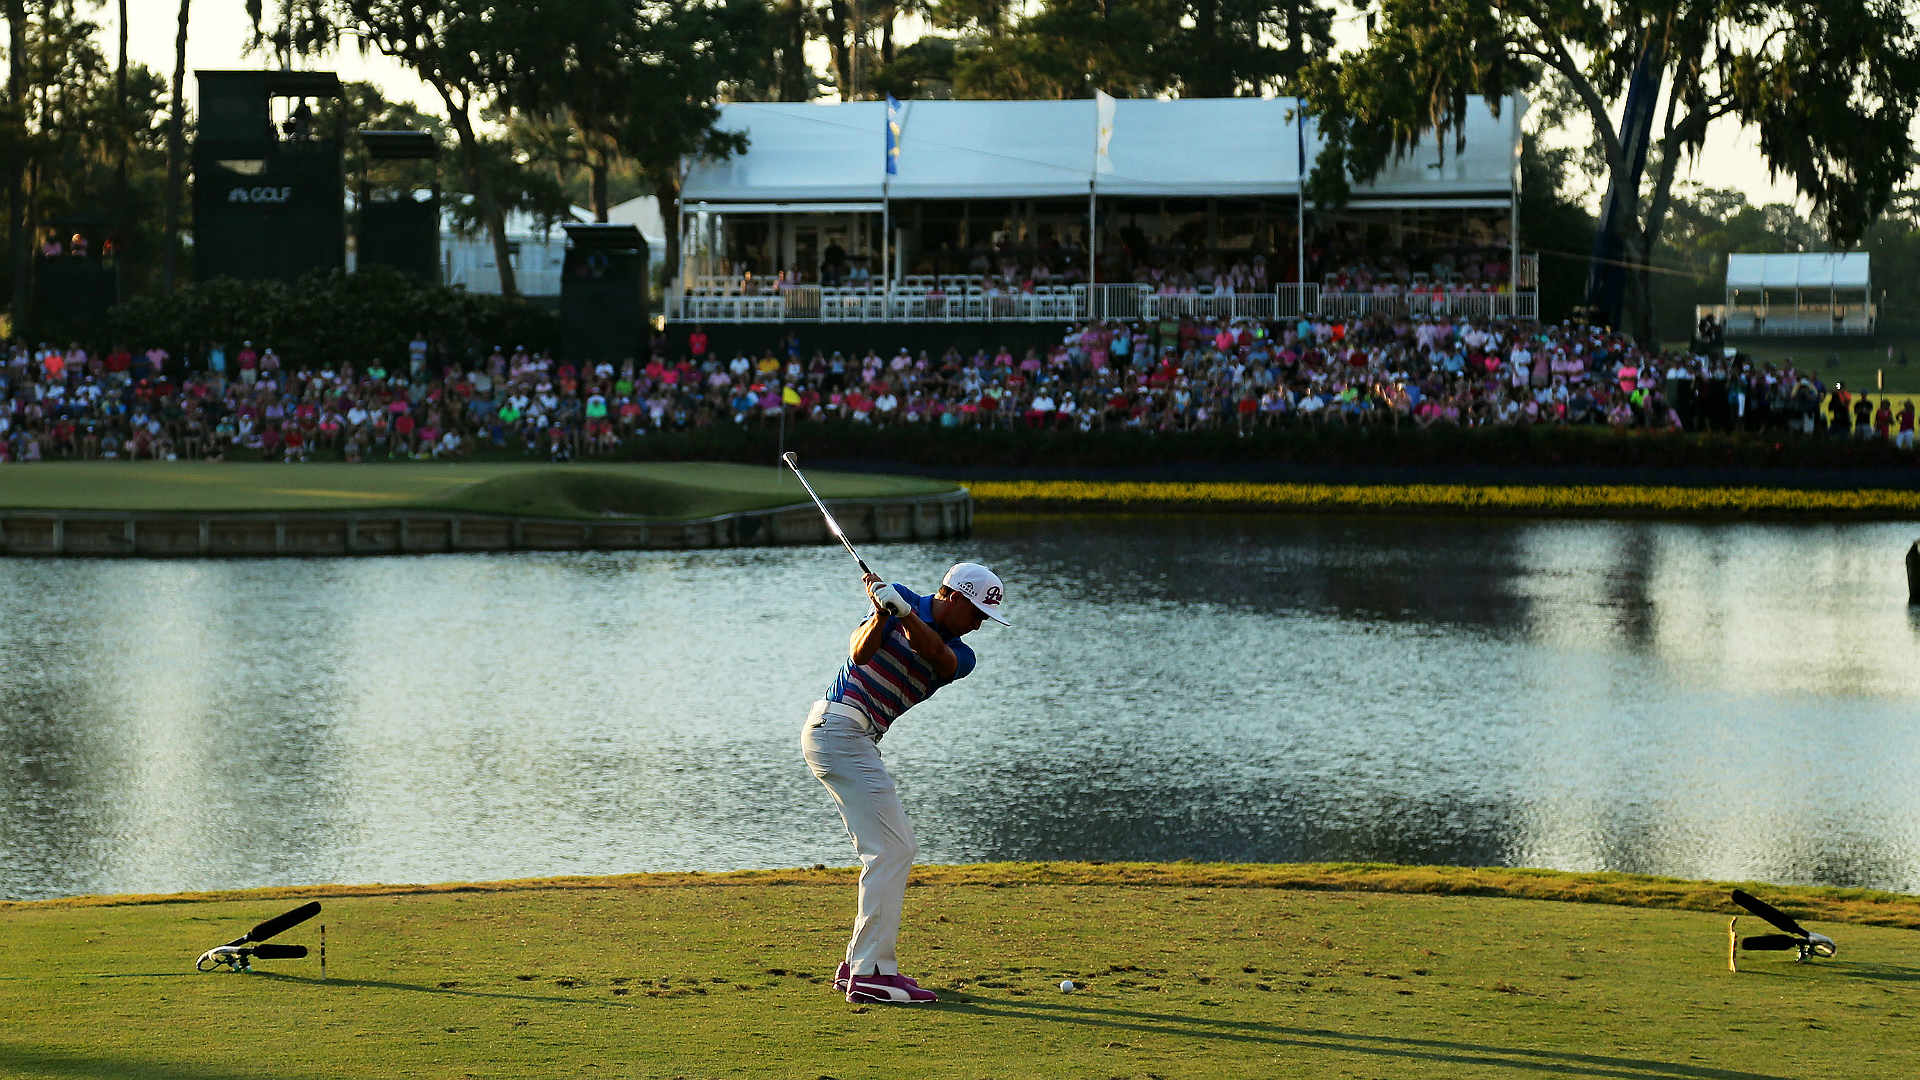 The Players Championship leaderboard: Results, highlights from Round 4 at TPC Sawgrass